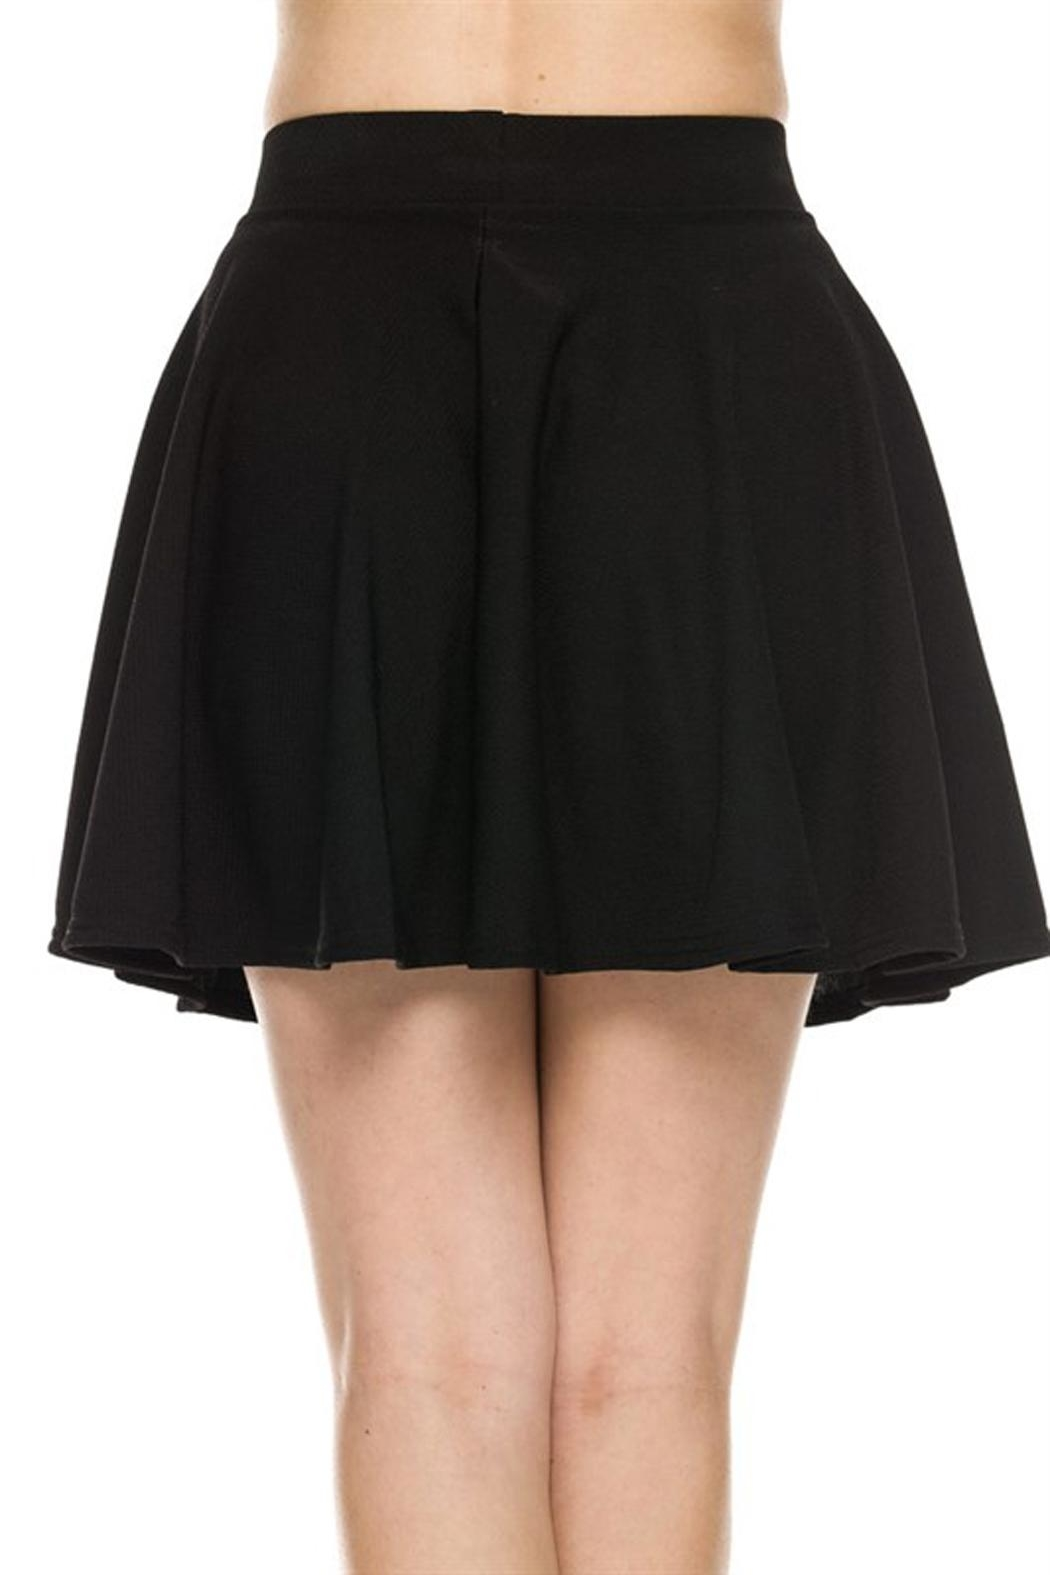 New Mix Textured Skater Skirt - Side Cropped Image